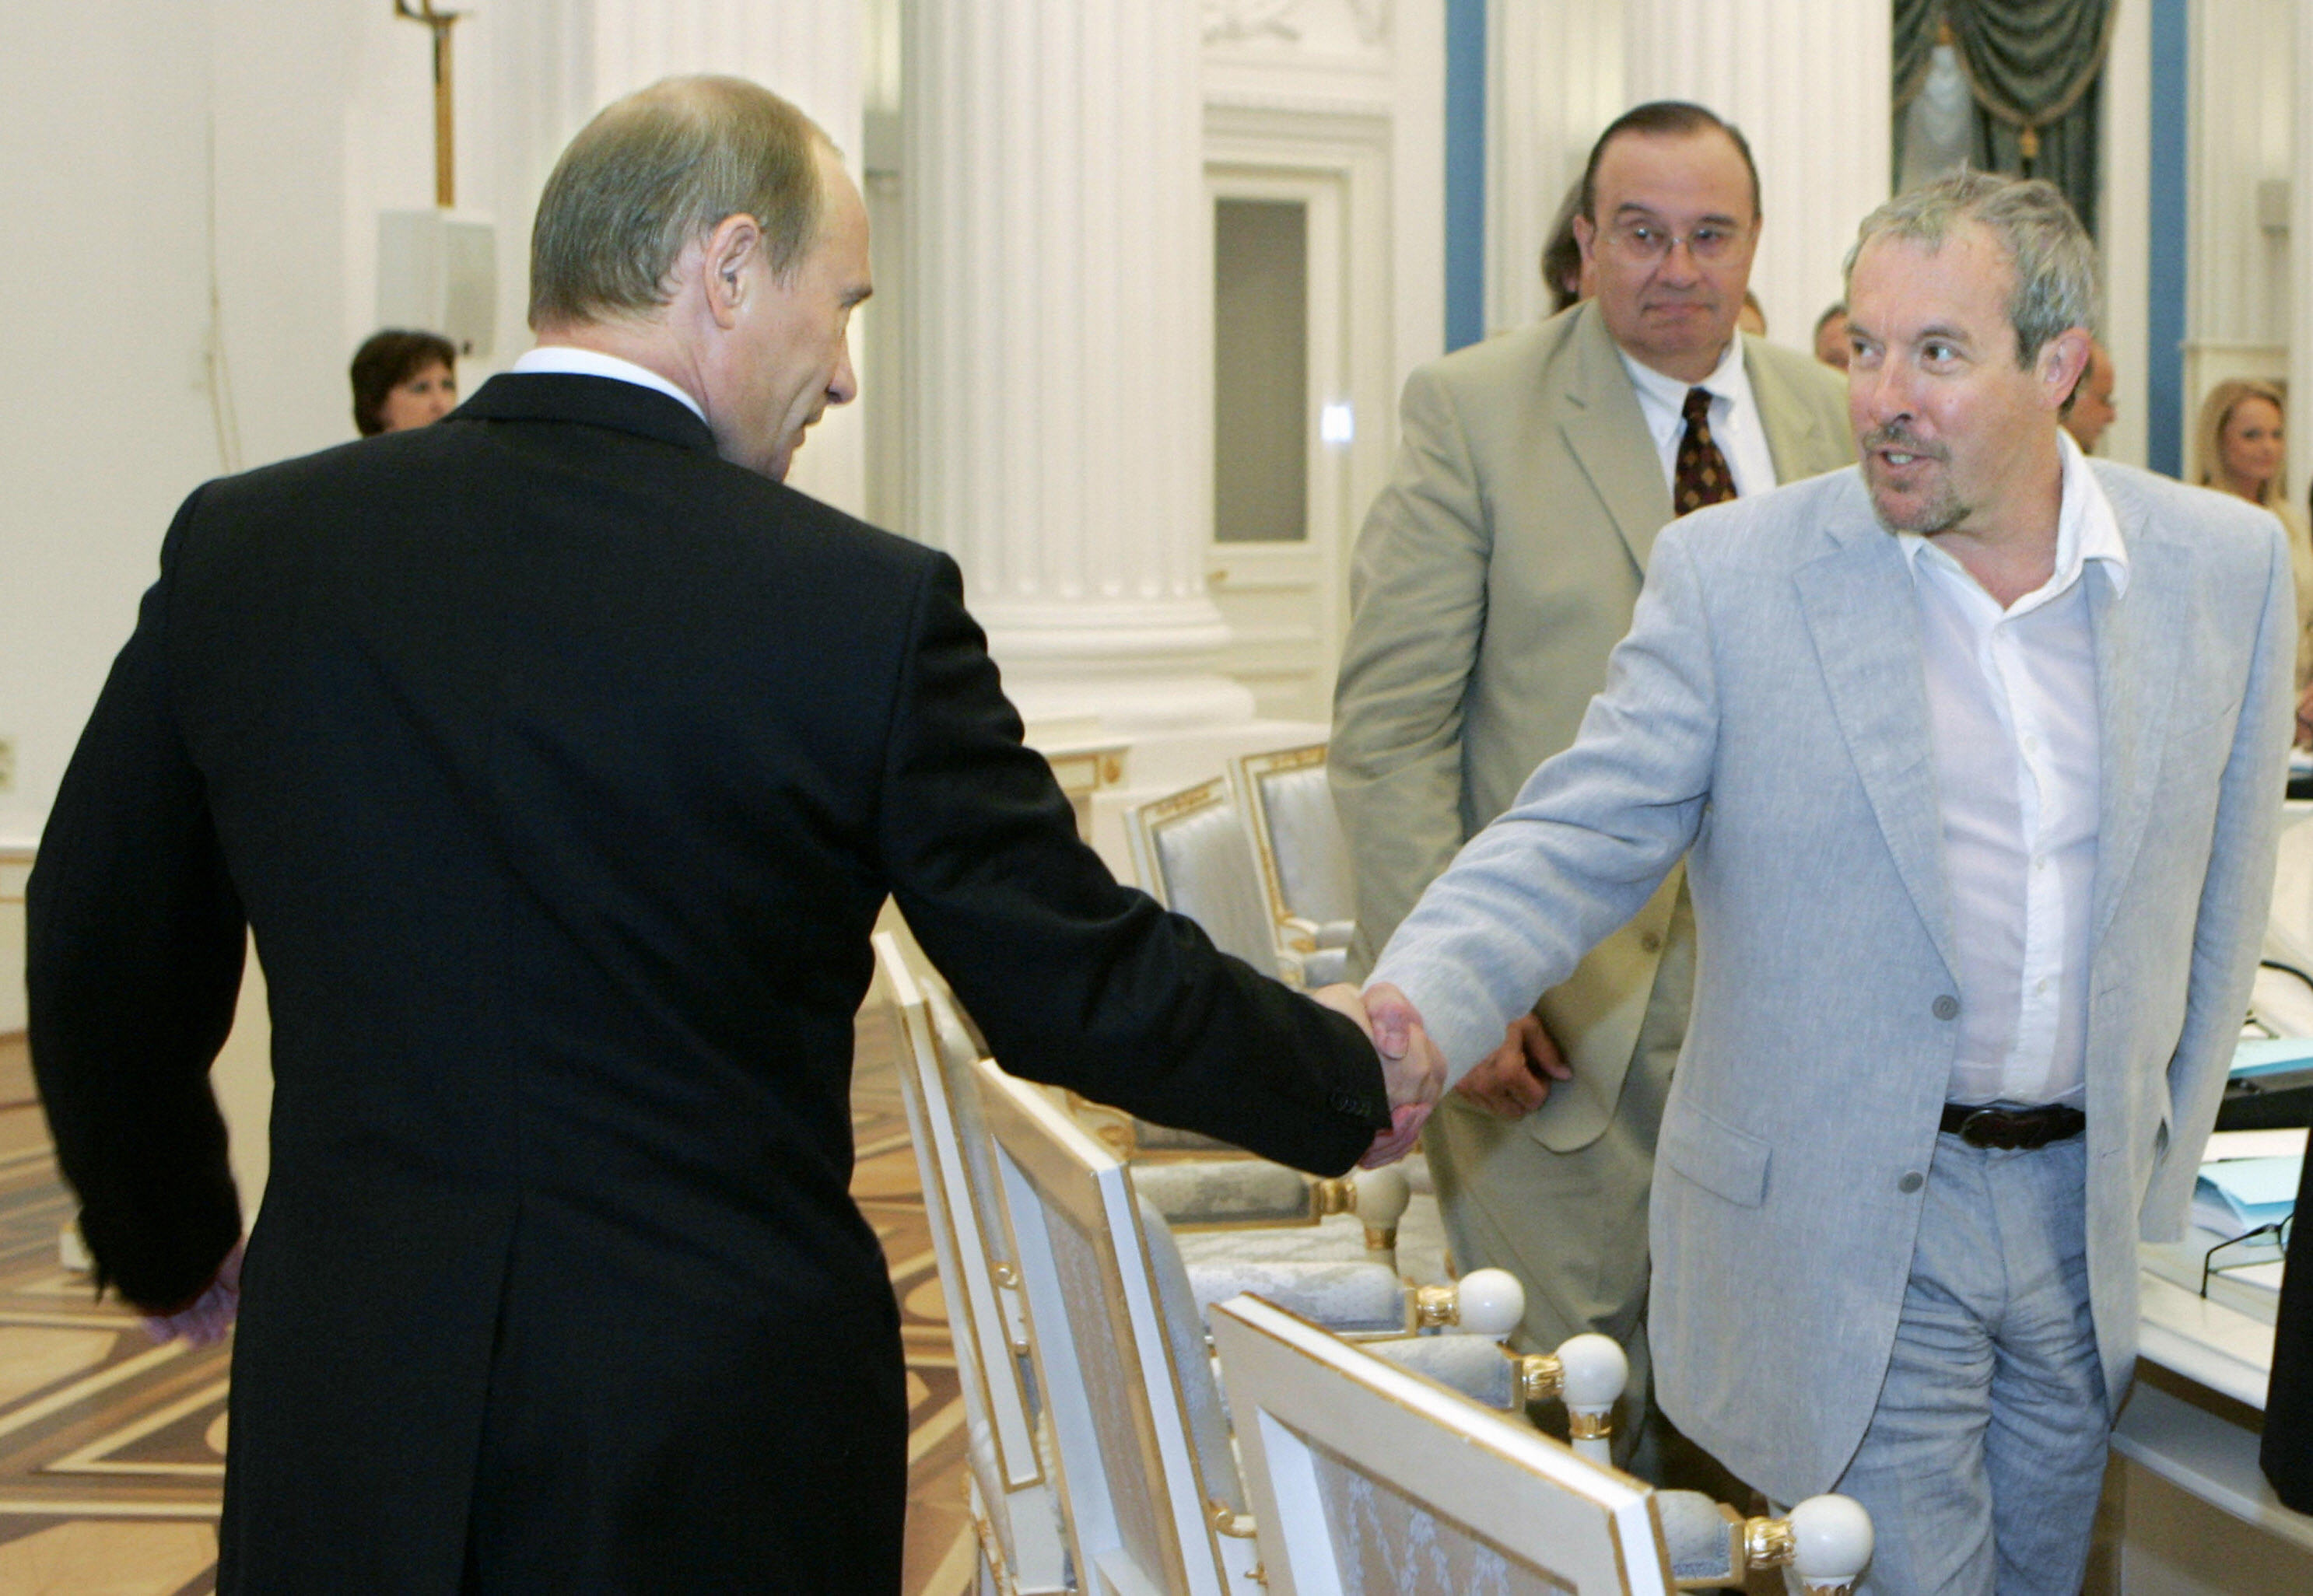 Moscow, RUSSIAN FEDERATION: Russian President Vladimir Putin (L) shakes hands with musician Andrey Makarevich during a meeting of the Culture and Art Council in the Kremlin in Moscow, 30 May 2007. AFP PHOTO / ITAR-TASS / PRESIDENTIAL PRESS SERVICE (Photo credit should read DMITRY ASTAKHOV/AFP/Getty Images)